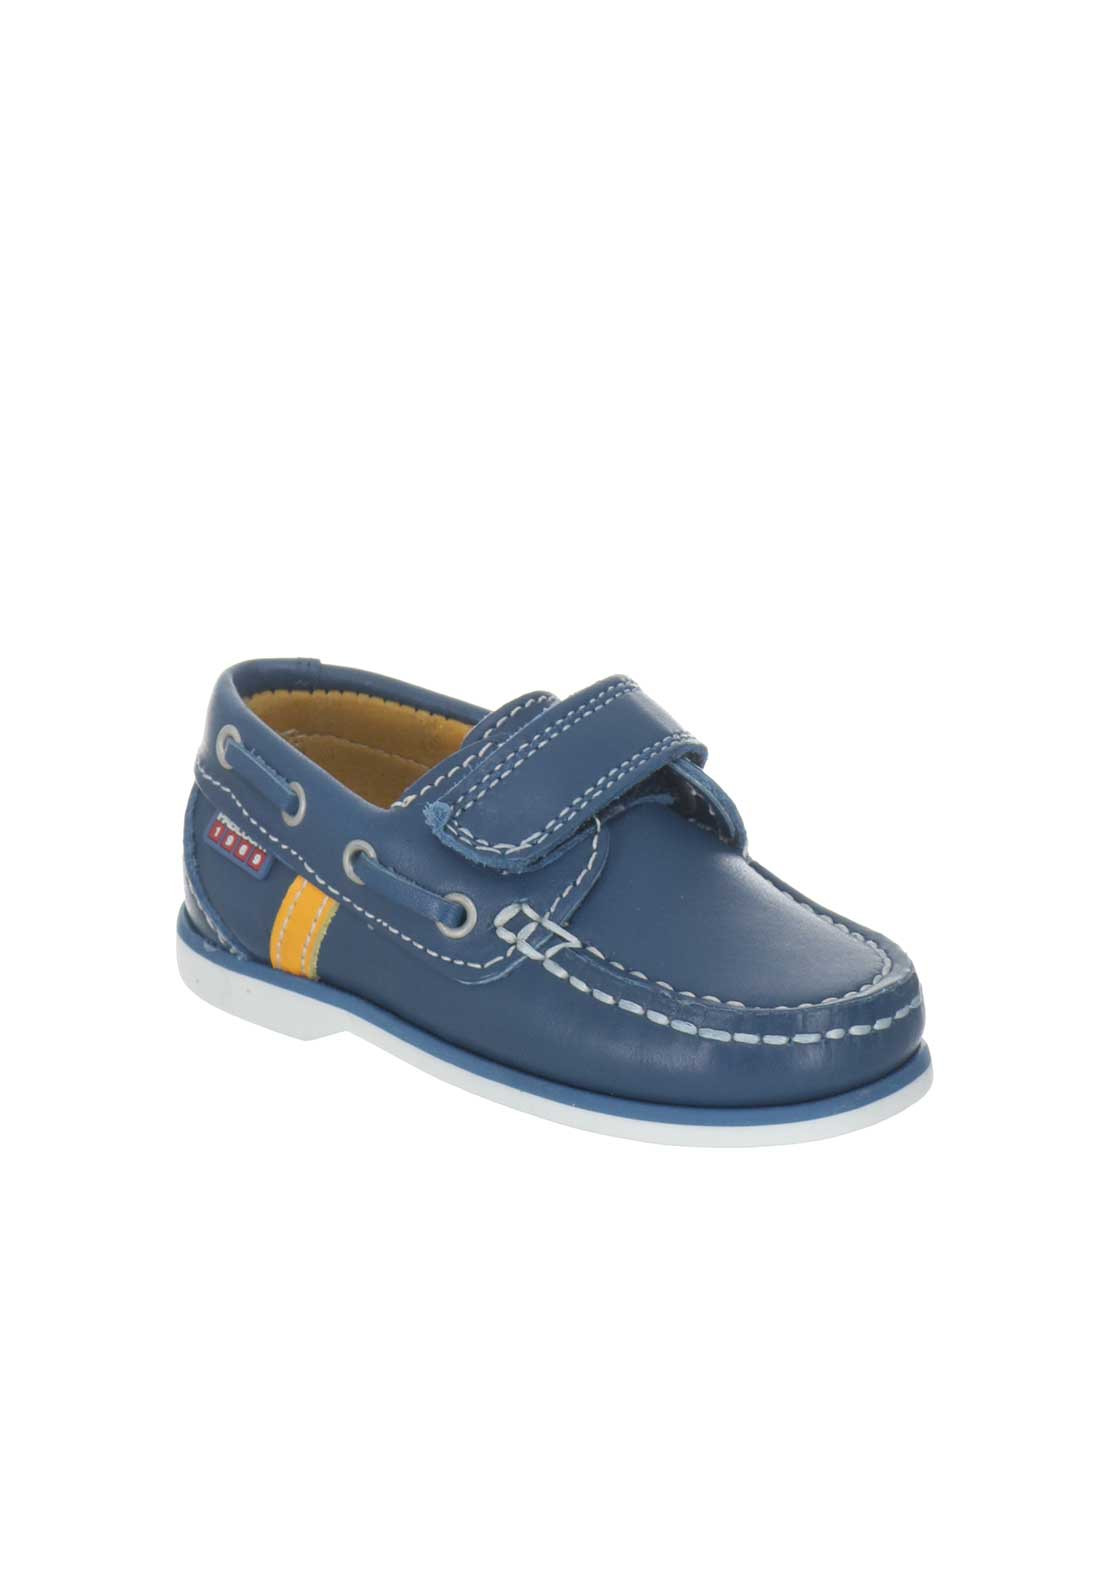 pablosky baby boys leather loafer shoes navy mcelhinneys